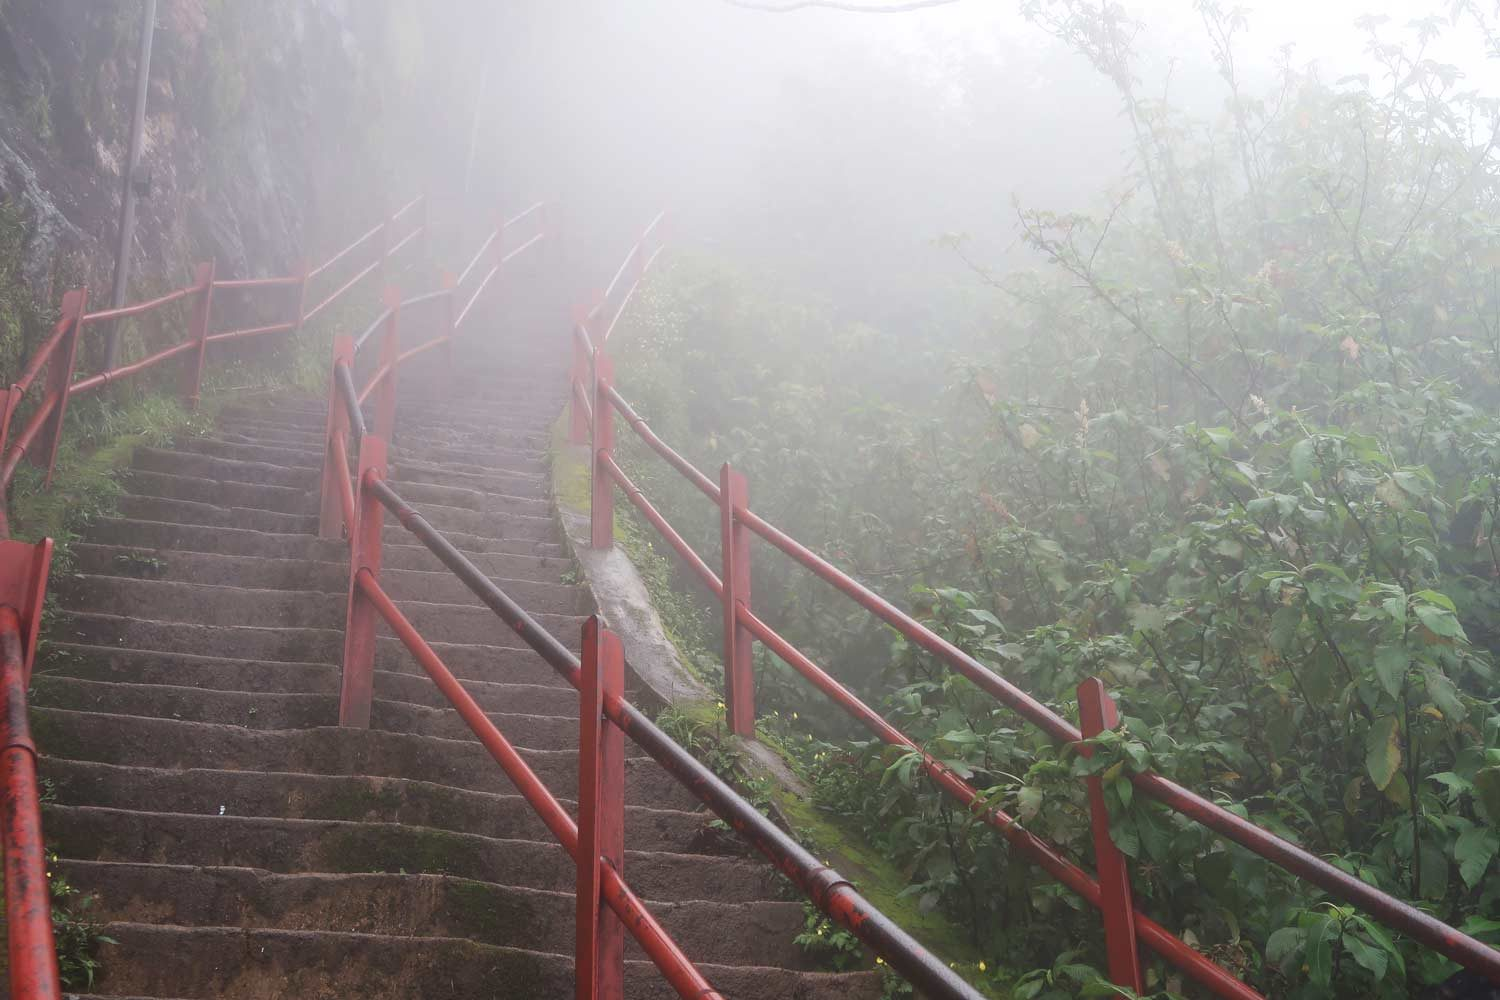 Treppe des Adam's Peak in Sri Lanka bei Nebel